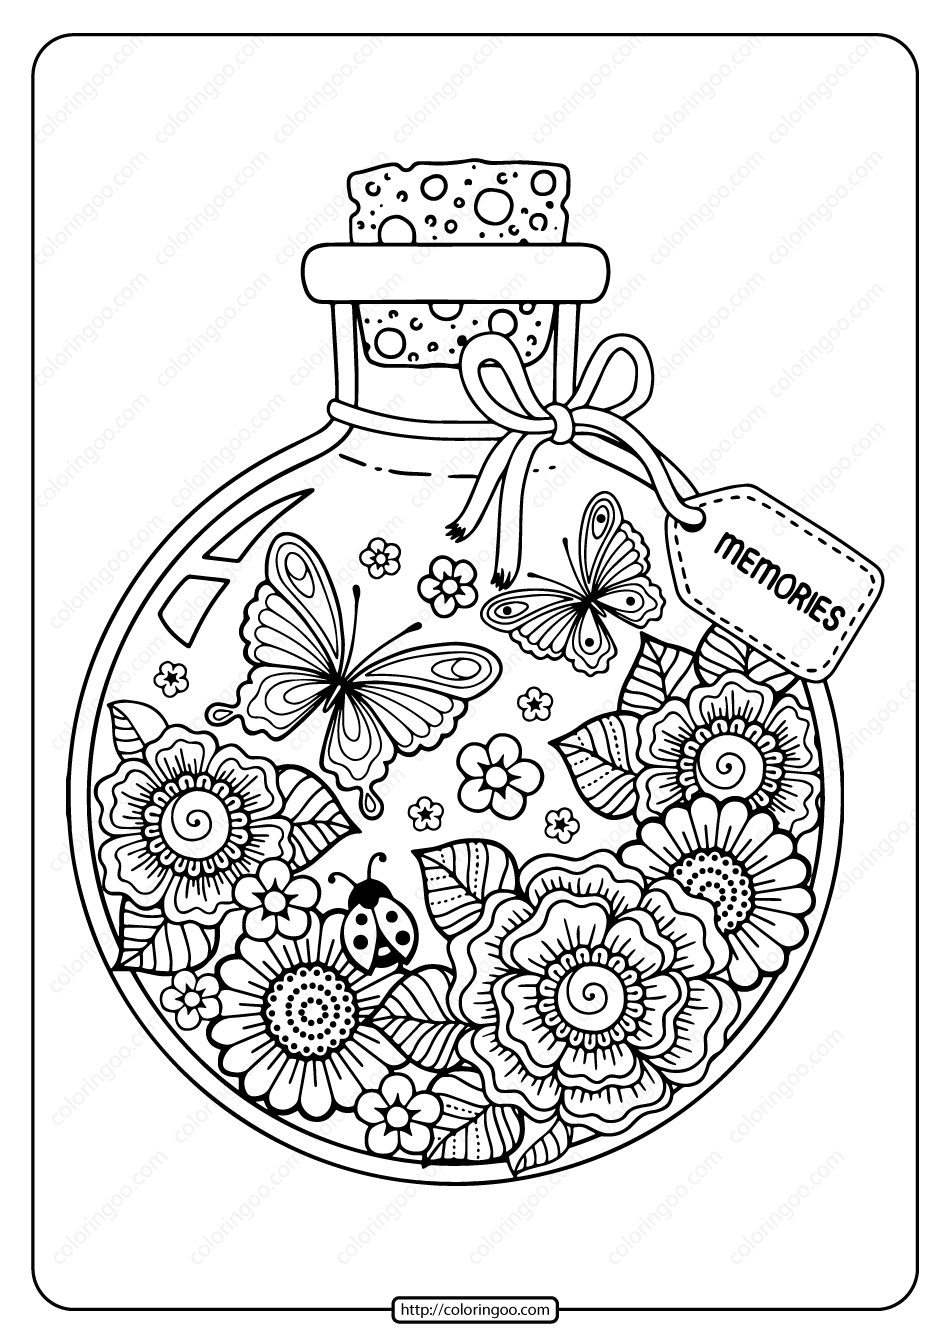 Printable Summer Memories Pdf Coloring Page | Coloring books, Coloring pages,  Bottle drawing